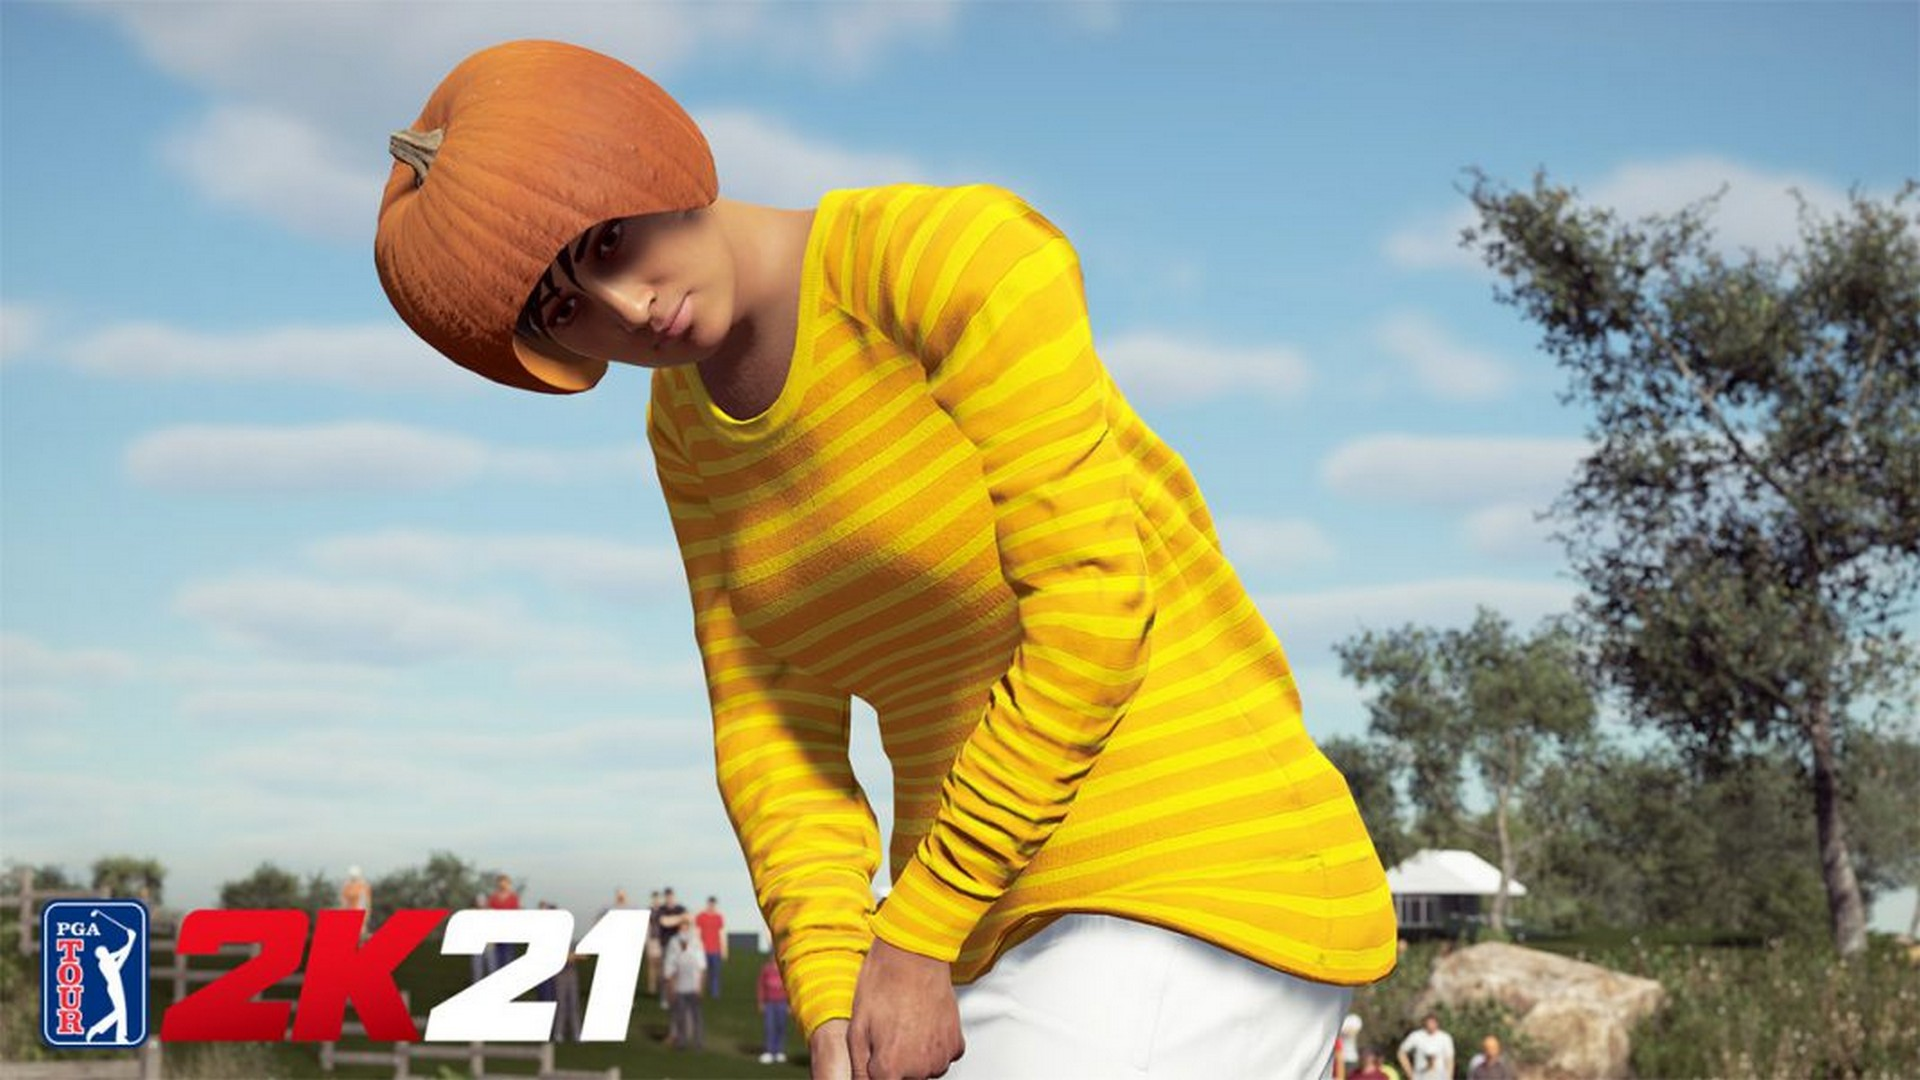 PGA TOUR 2K21 Adds Halloween-Themed Drip To MyPLAYER Gear